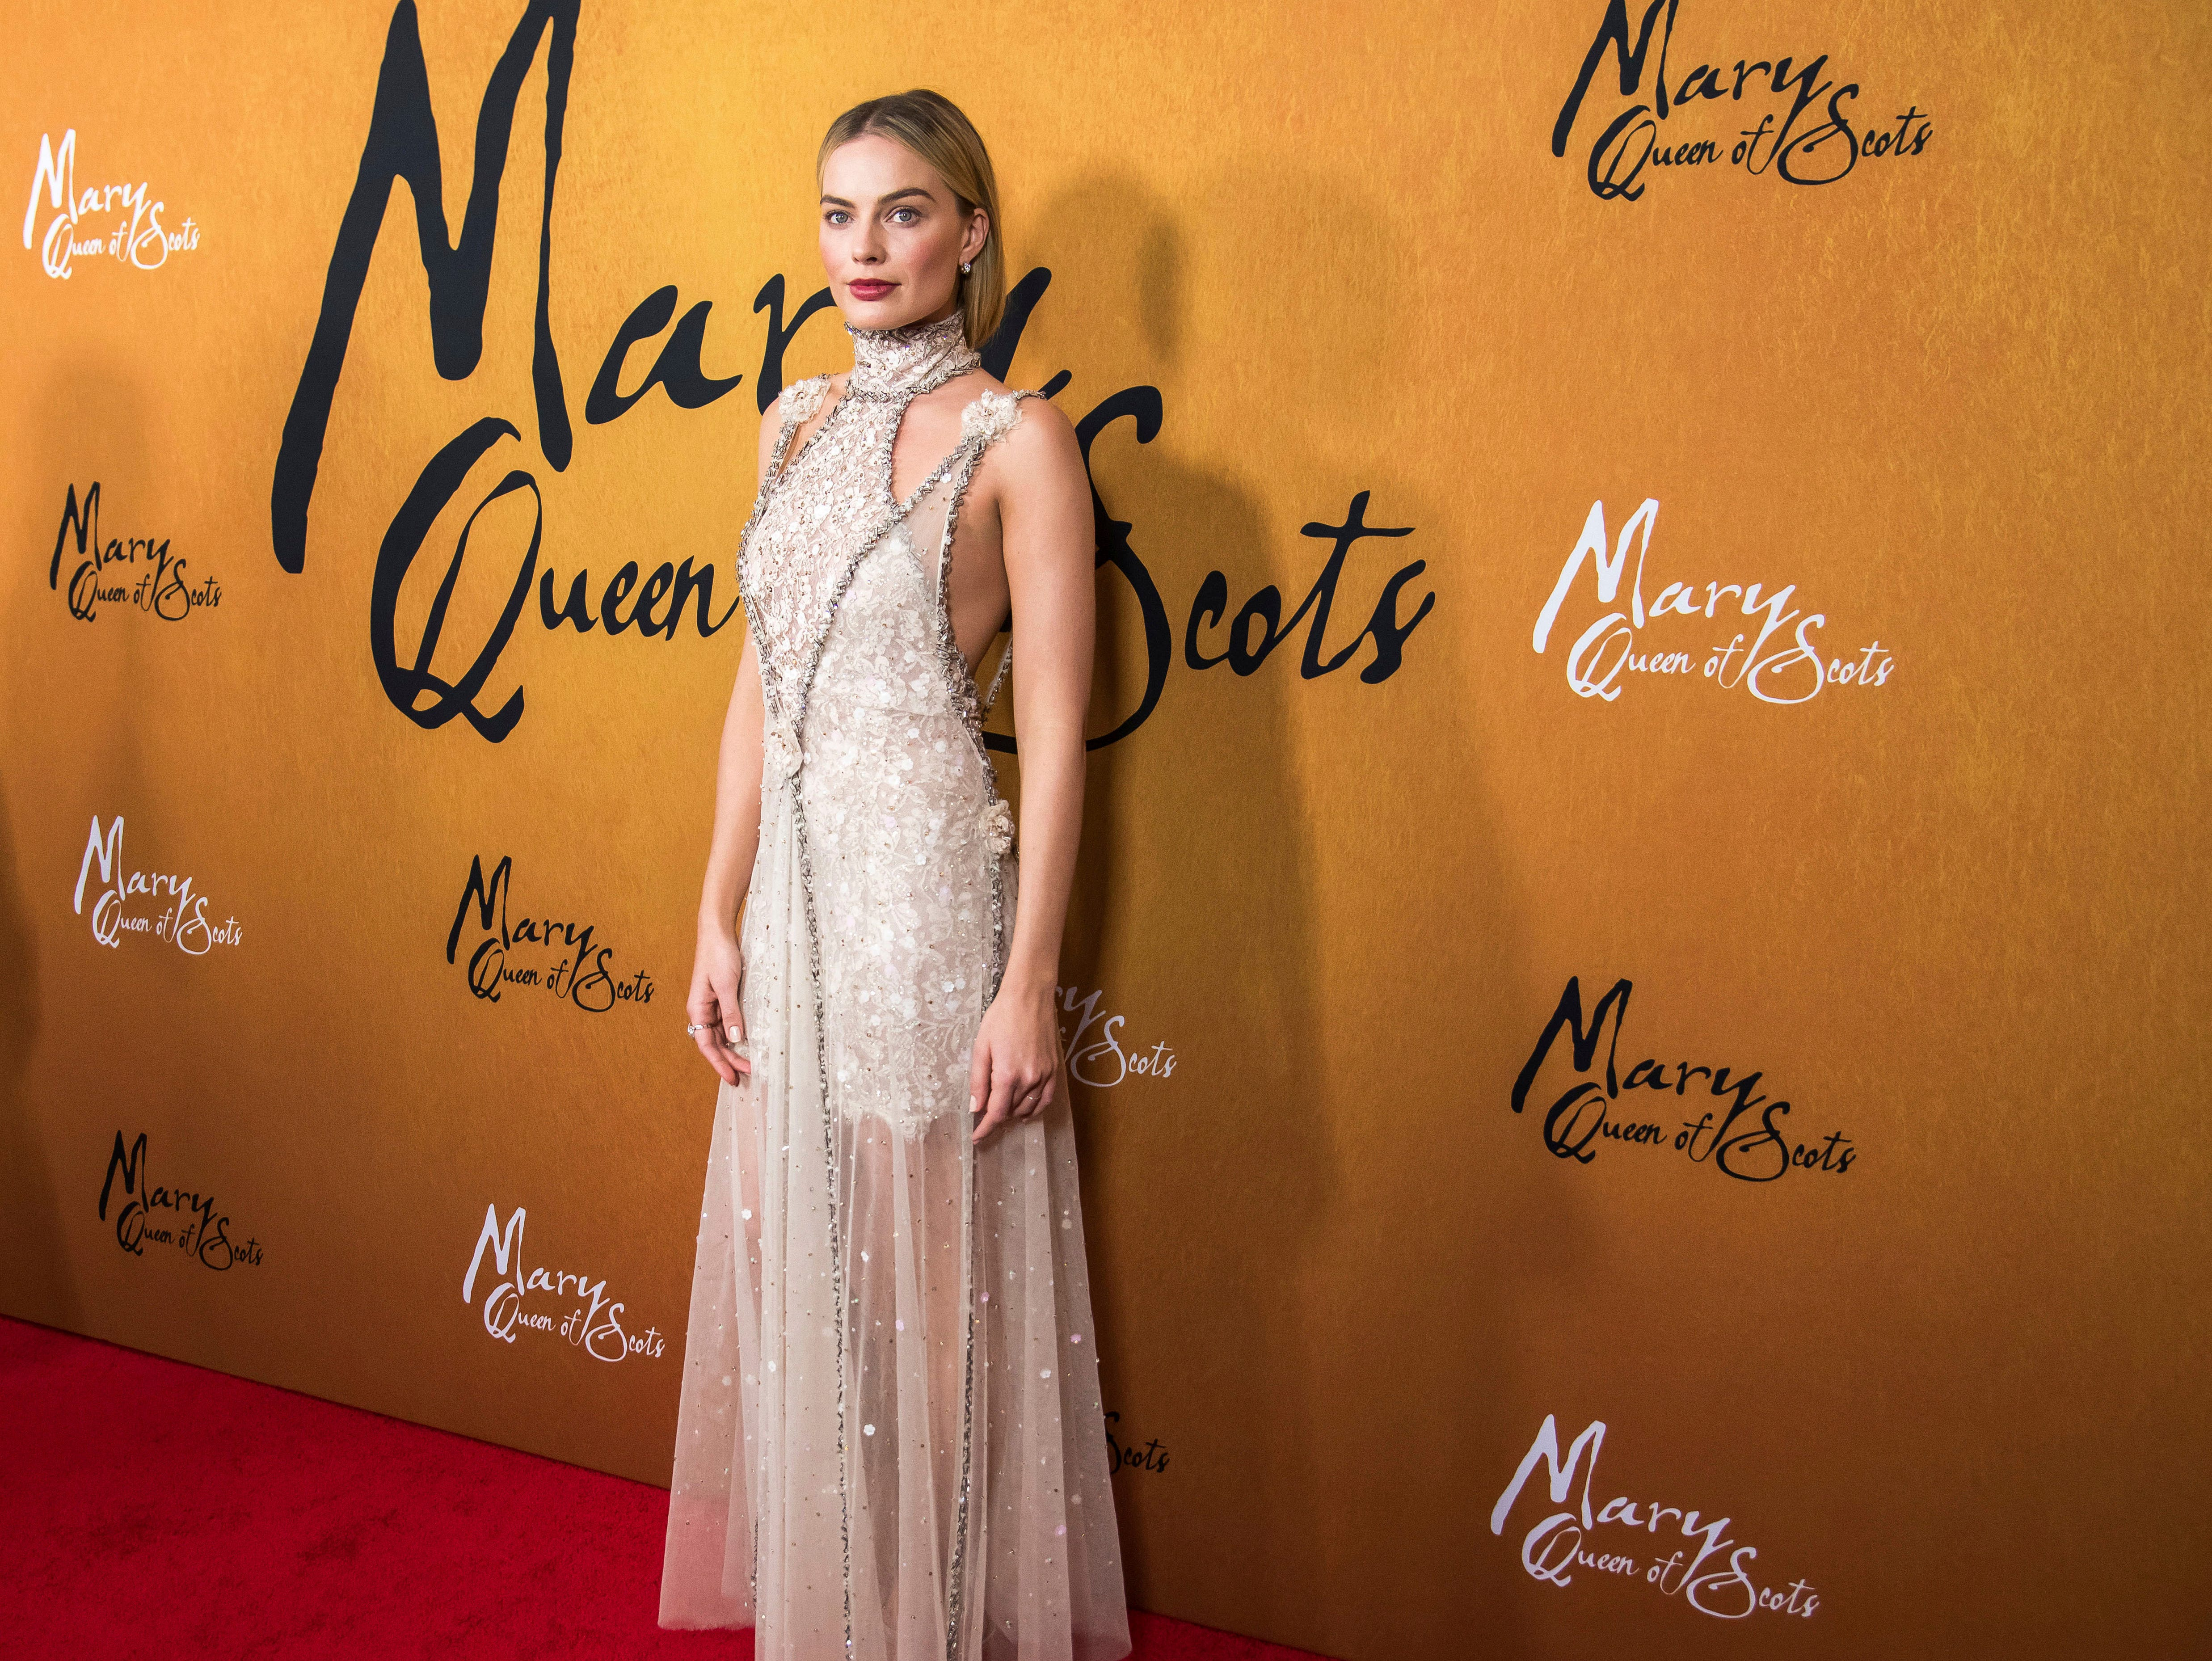 """Margot Robbie attends the premiere of """"Mary Queen of Scots"""" at The Paris Theatre on Tuesday, Dec. 4, 2018, in New York. (Photo by Charles Sykes/Invision/AP) ORG XMIT: NYCS205"""